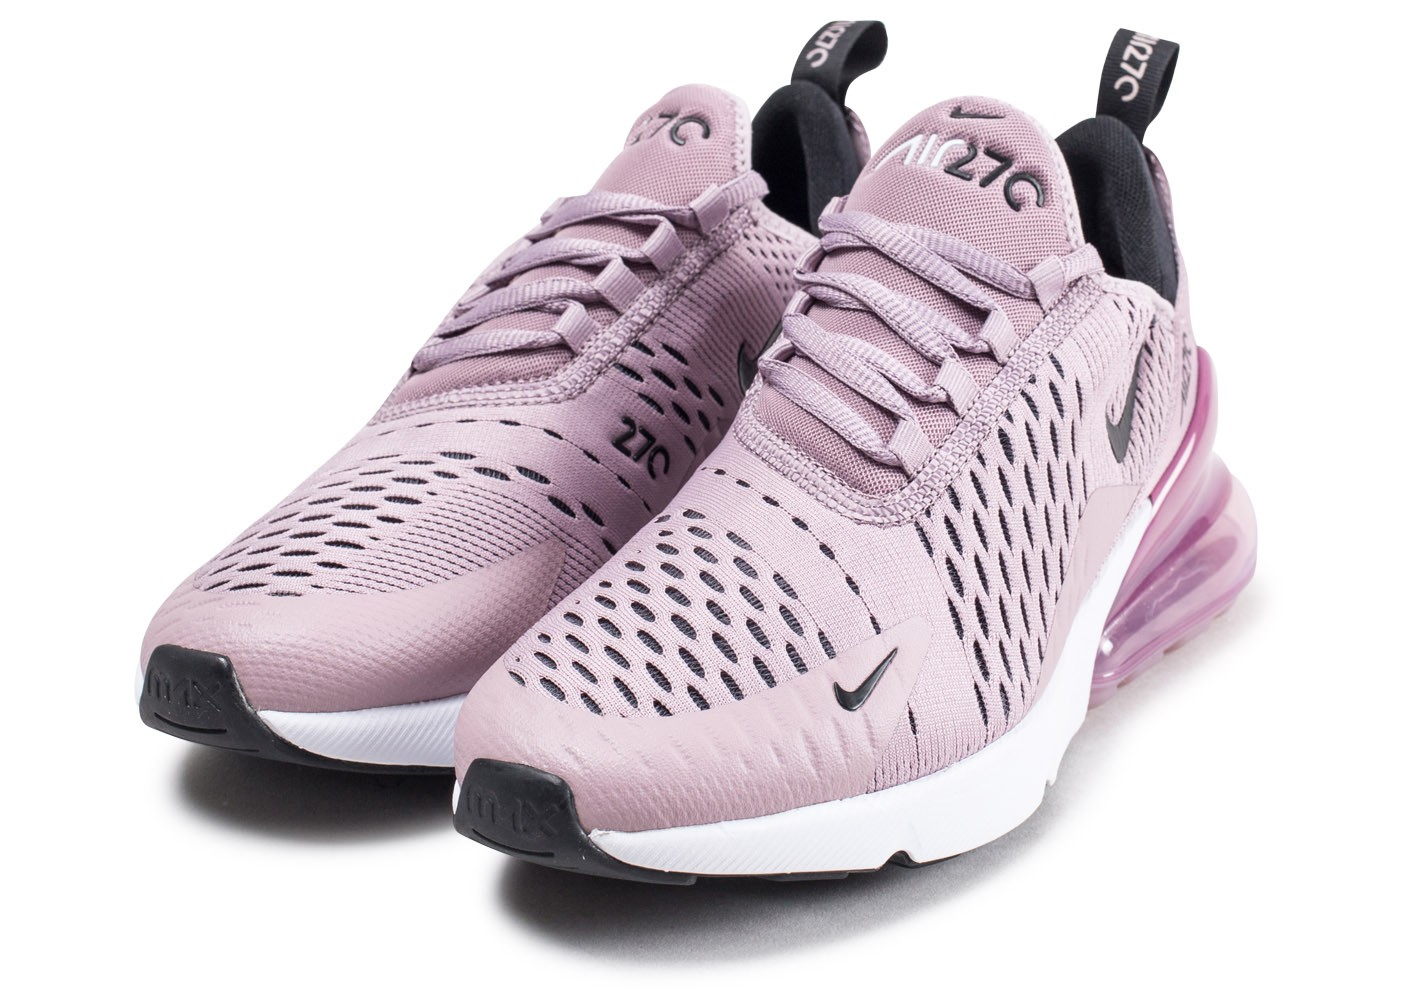 on sale 5749a e2b9f ... Chaussures Nike Air Max 270 Elemental Rose vue intérieure ...